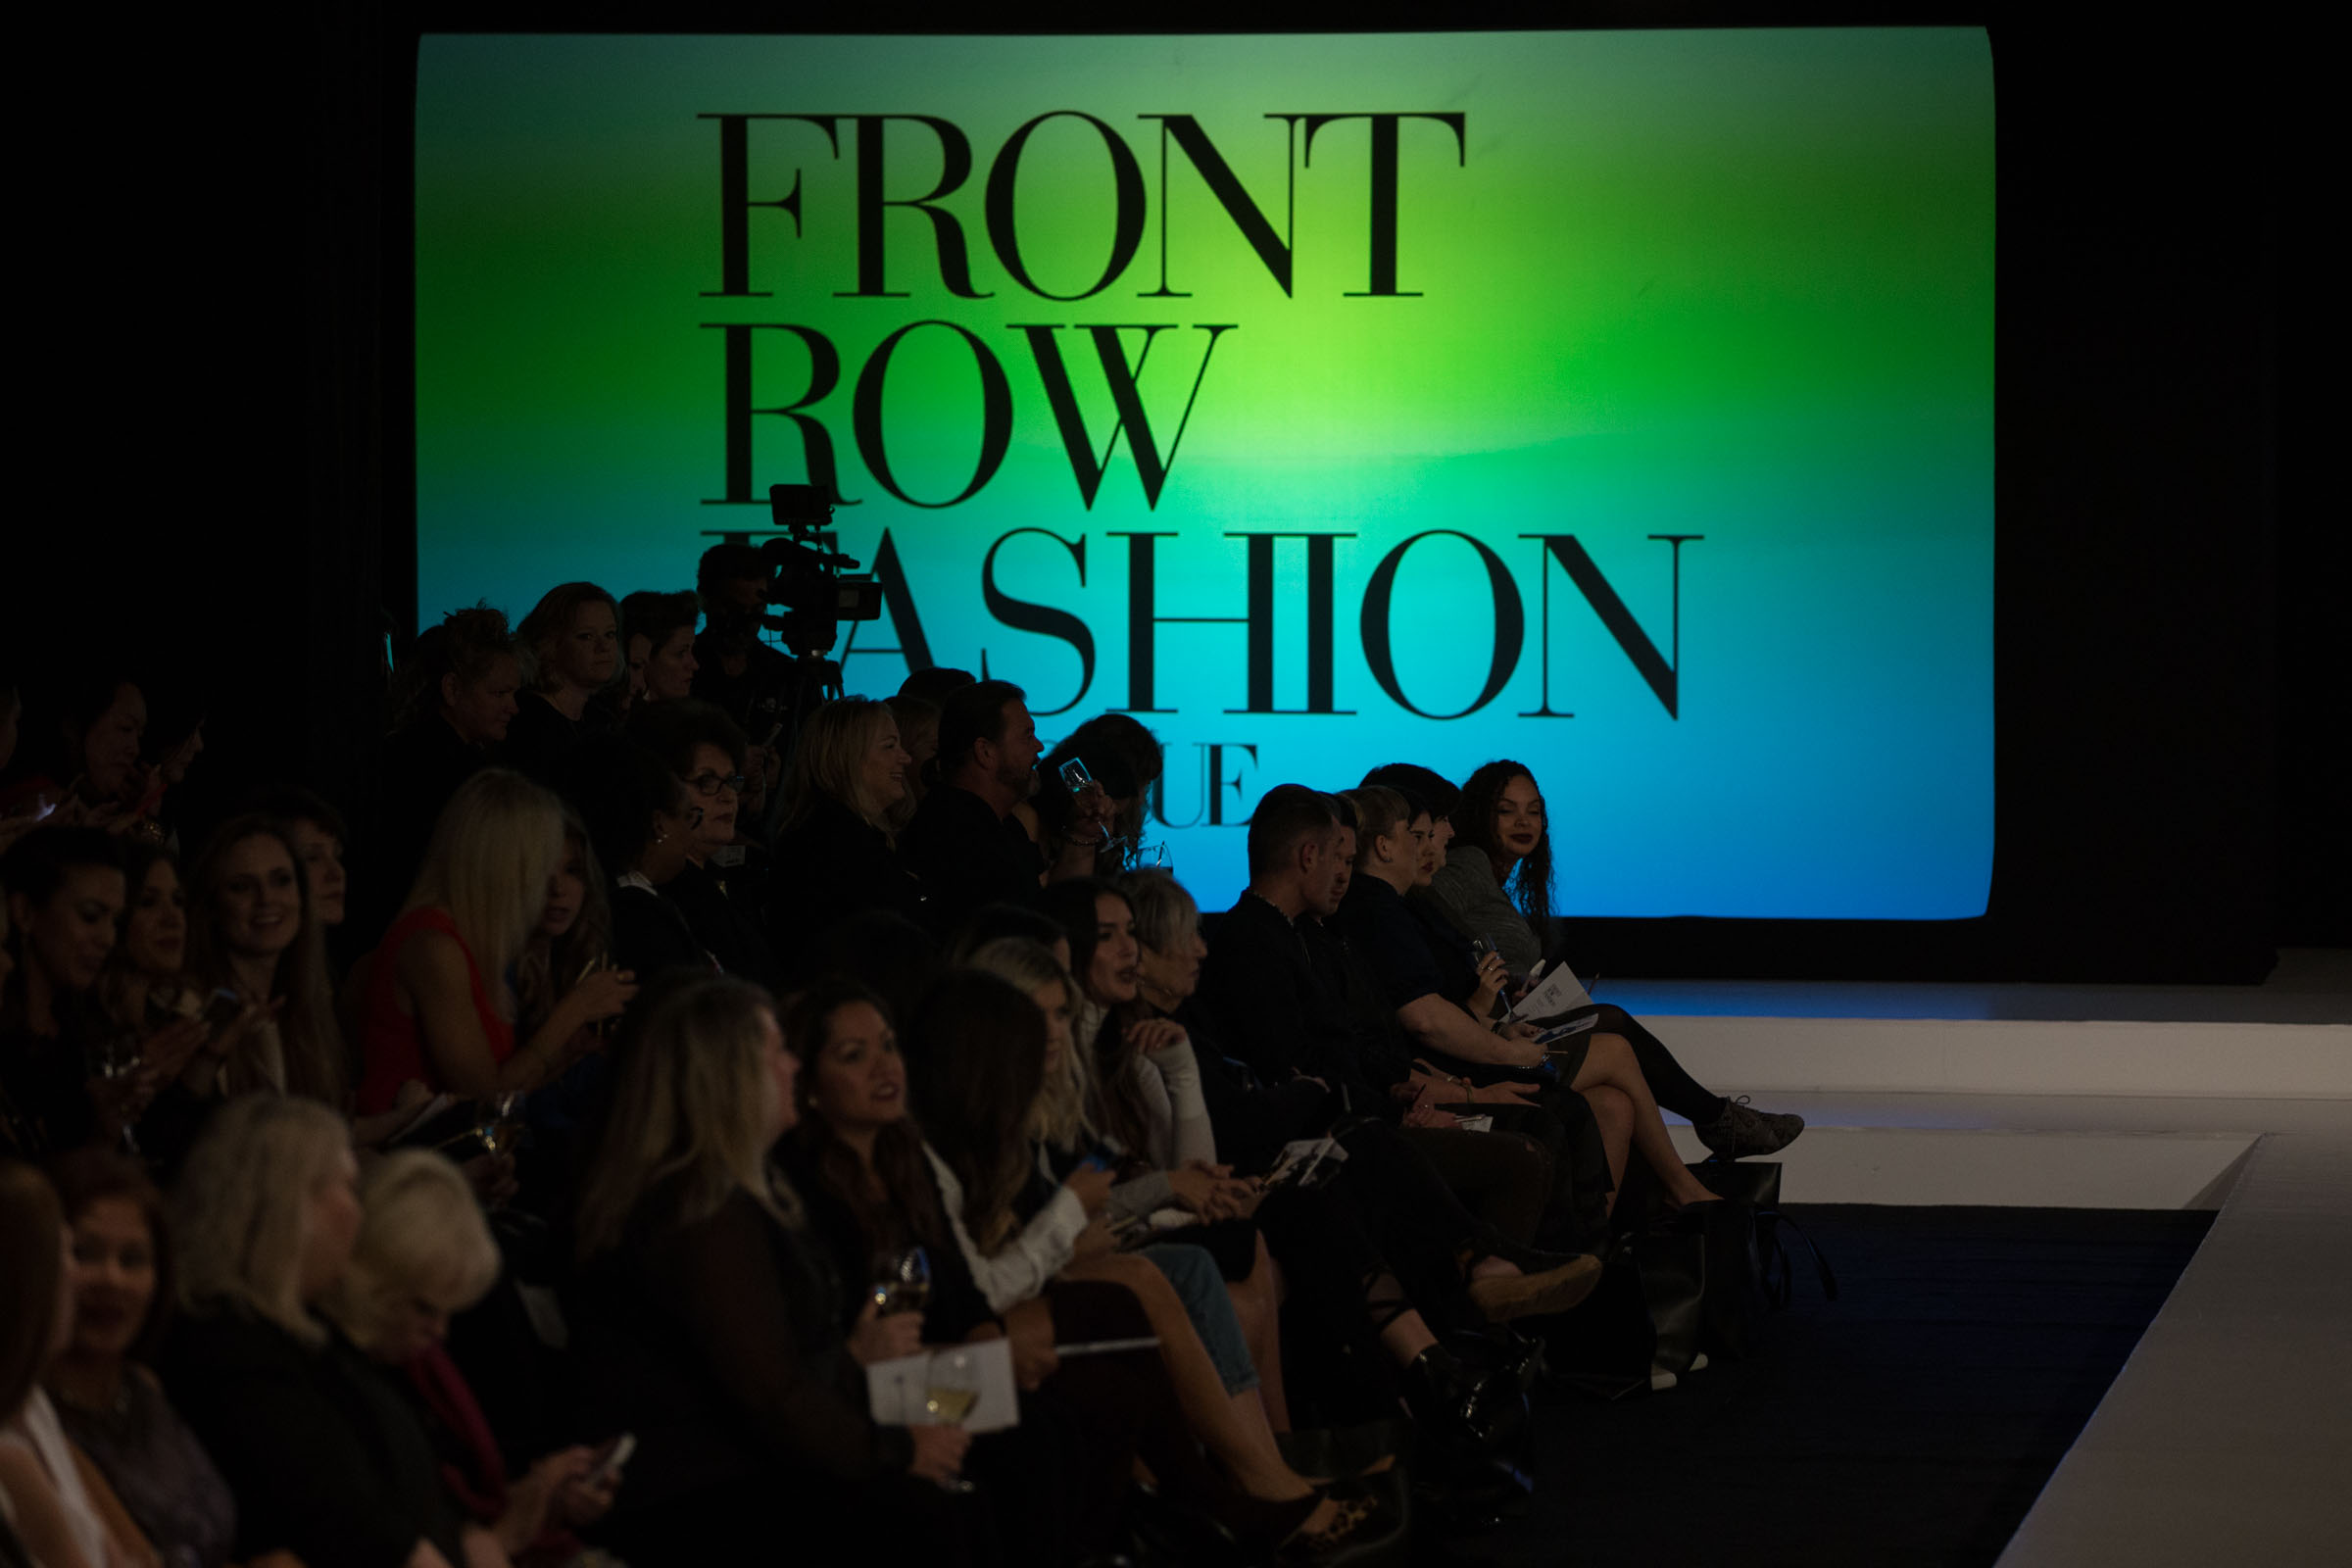 Front Row Fashion sponsored by Vogue at Bellevue Fashion Week 2016